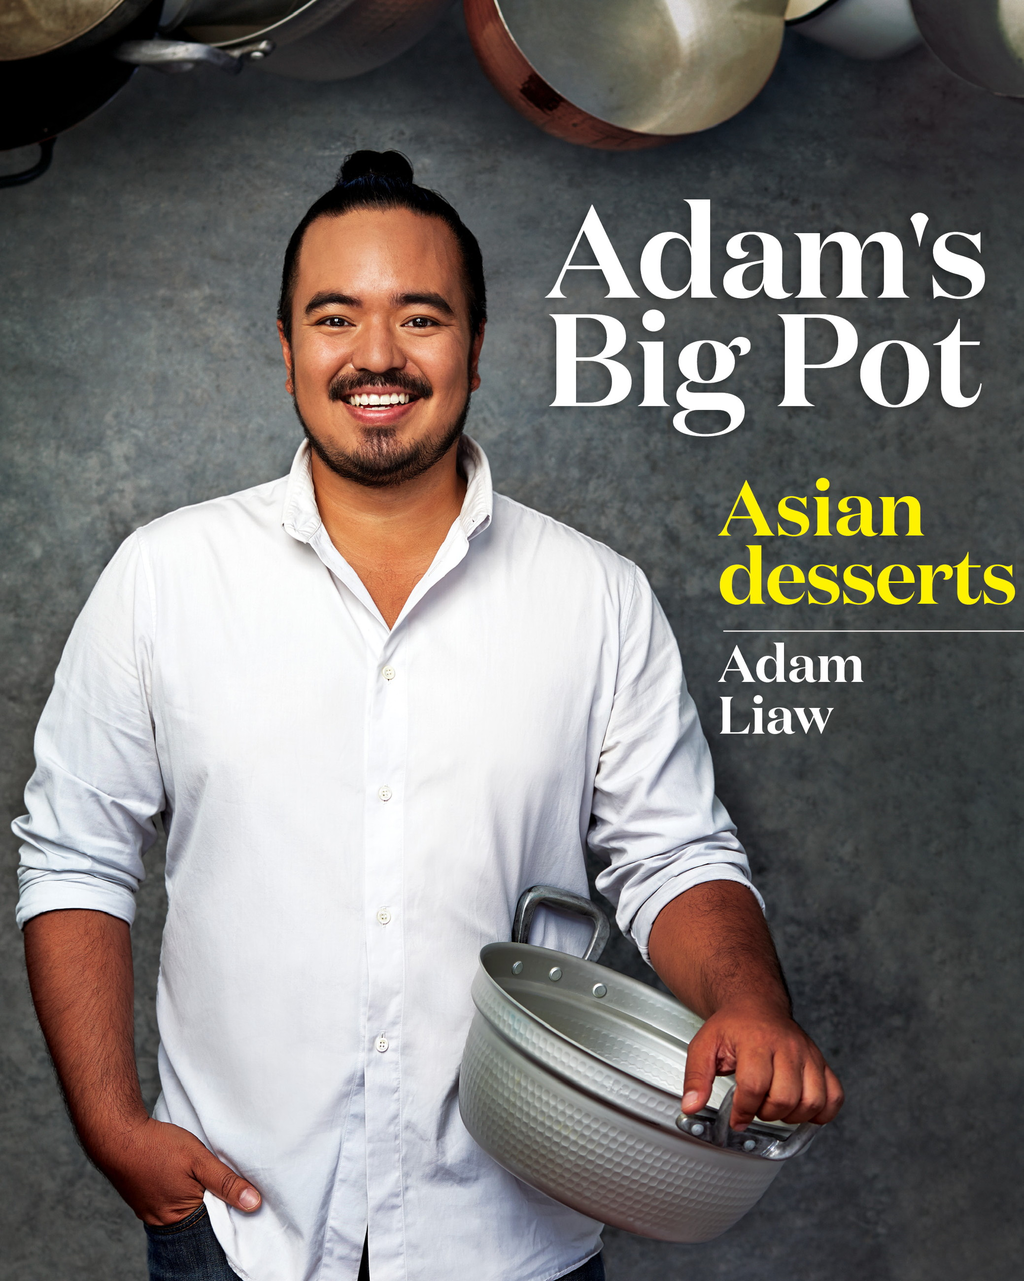 Adam's Big Pot Asian Desserts